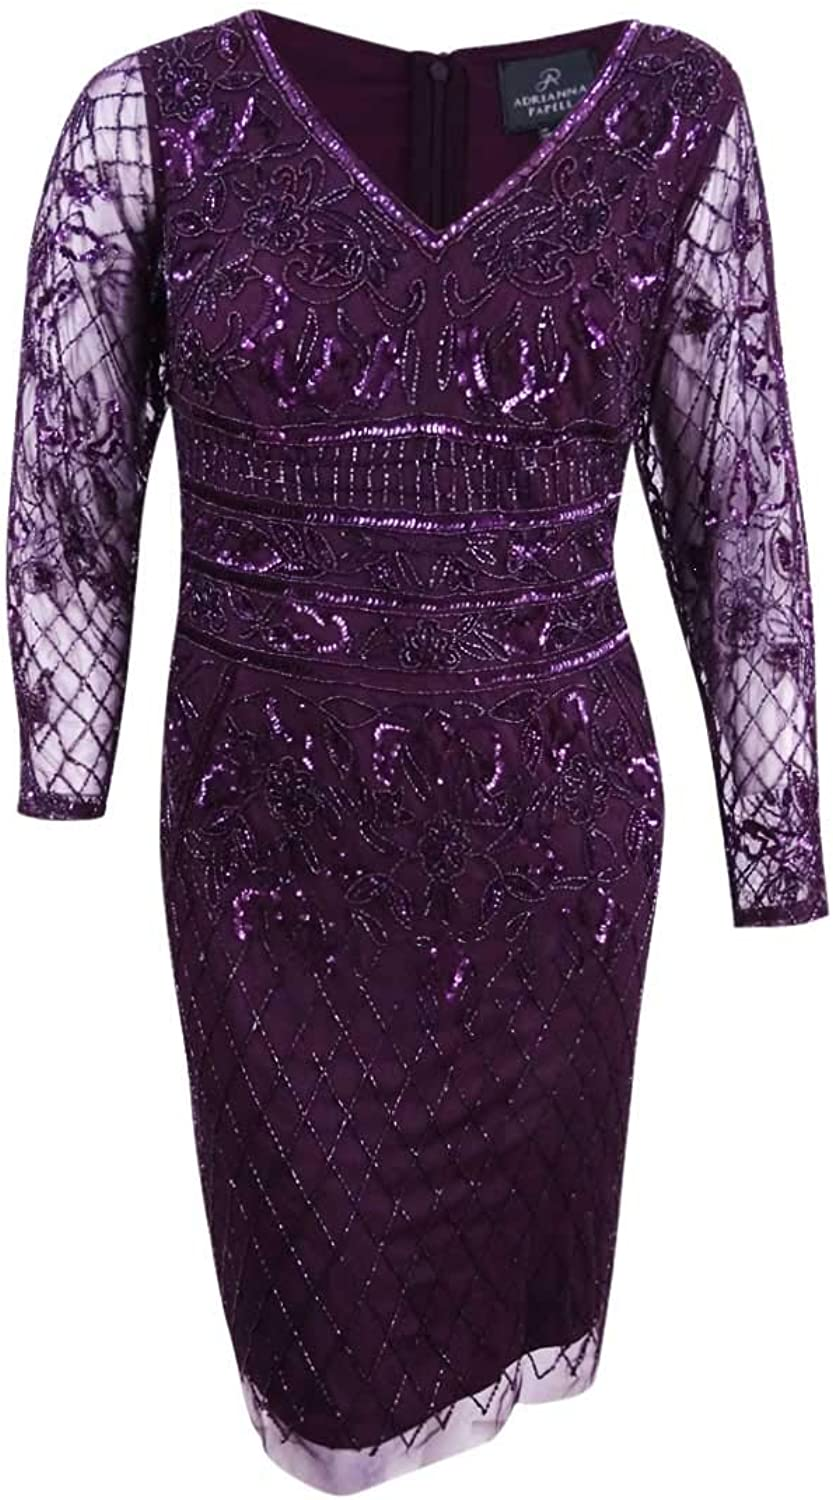 Adrianna Papell Womens Beaded Above Knee Cocktail Dress